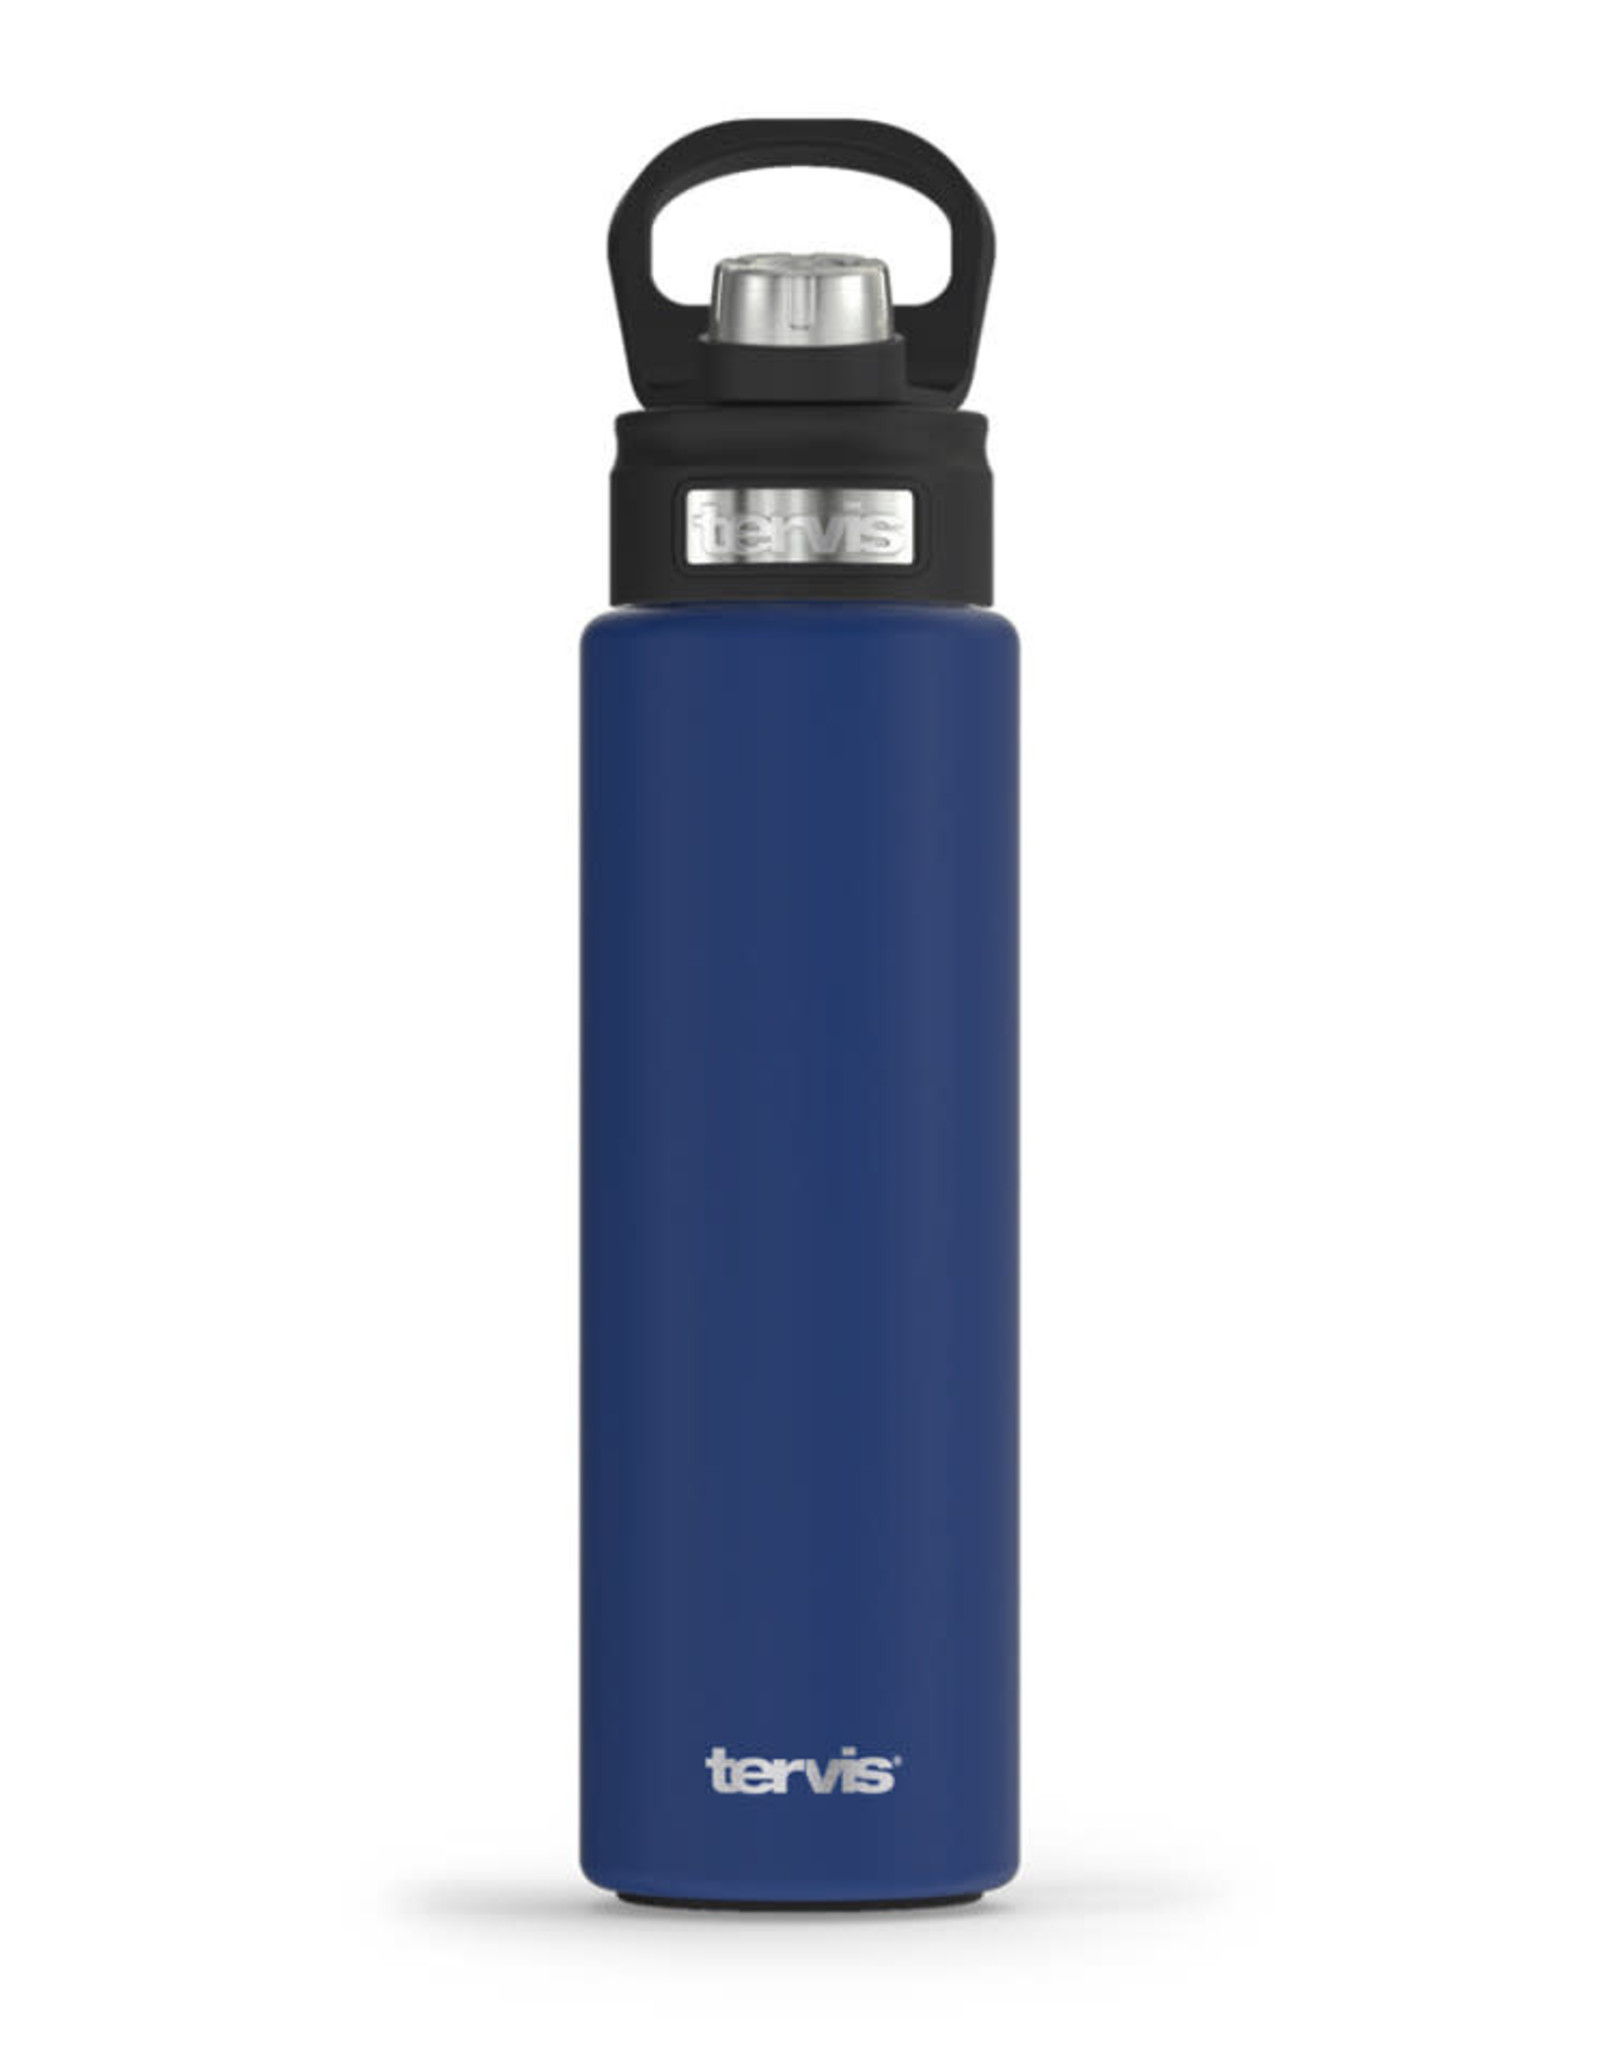 Tervis Tumbler 24oz Stainless Water Bottle Deepwater Blue Powder Coated